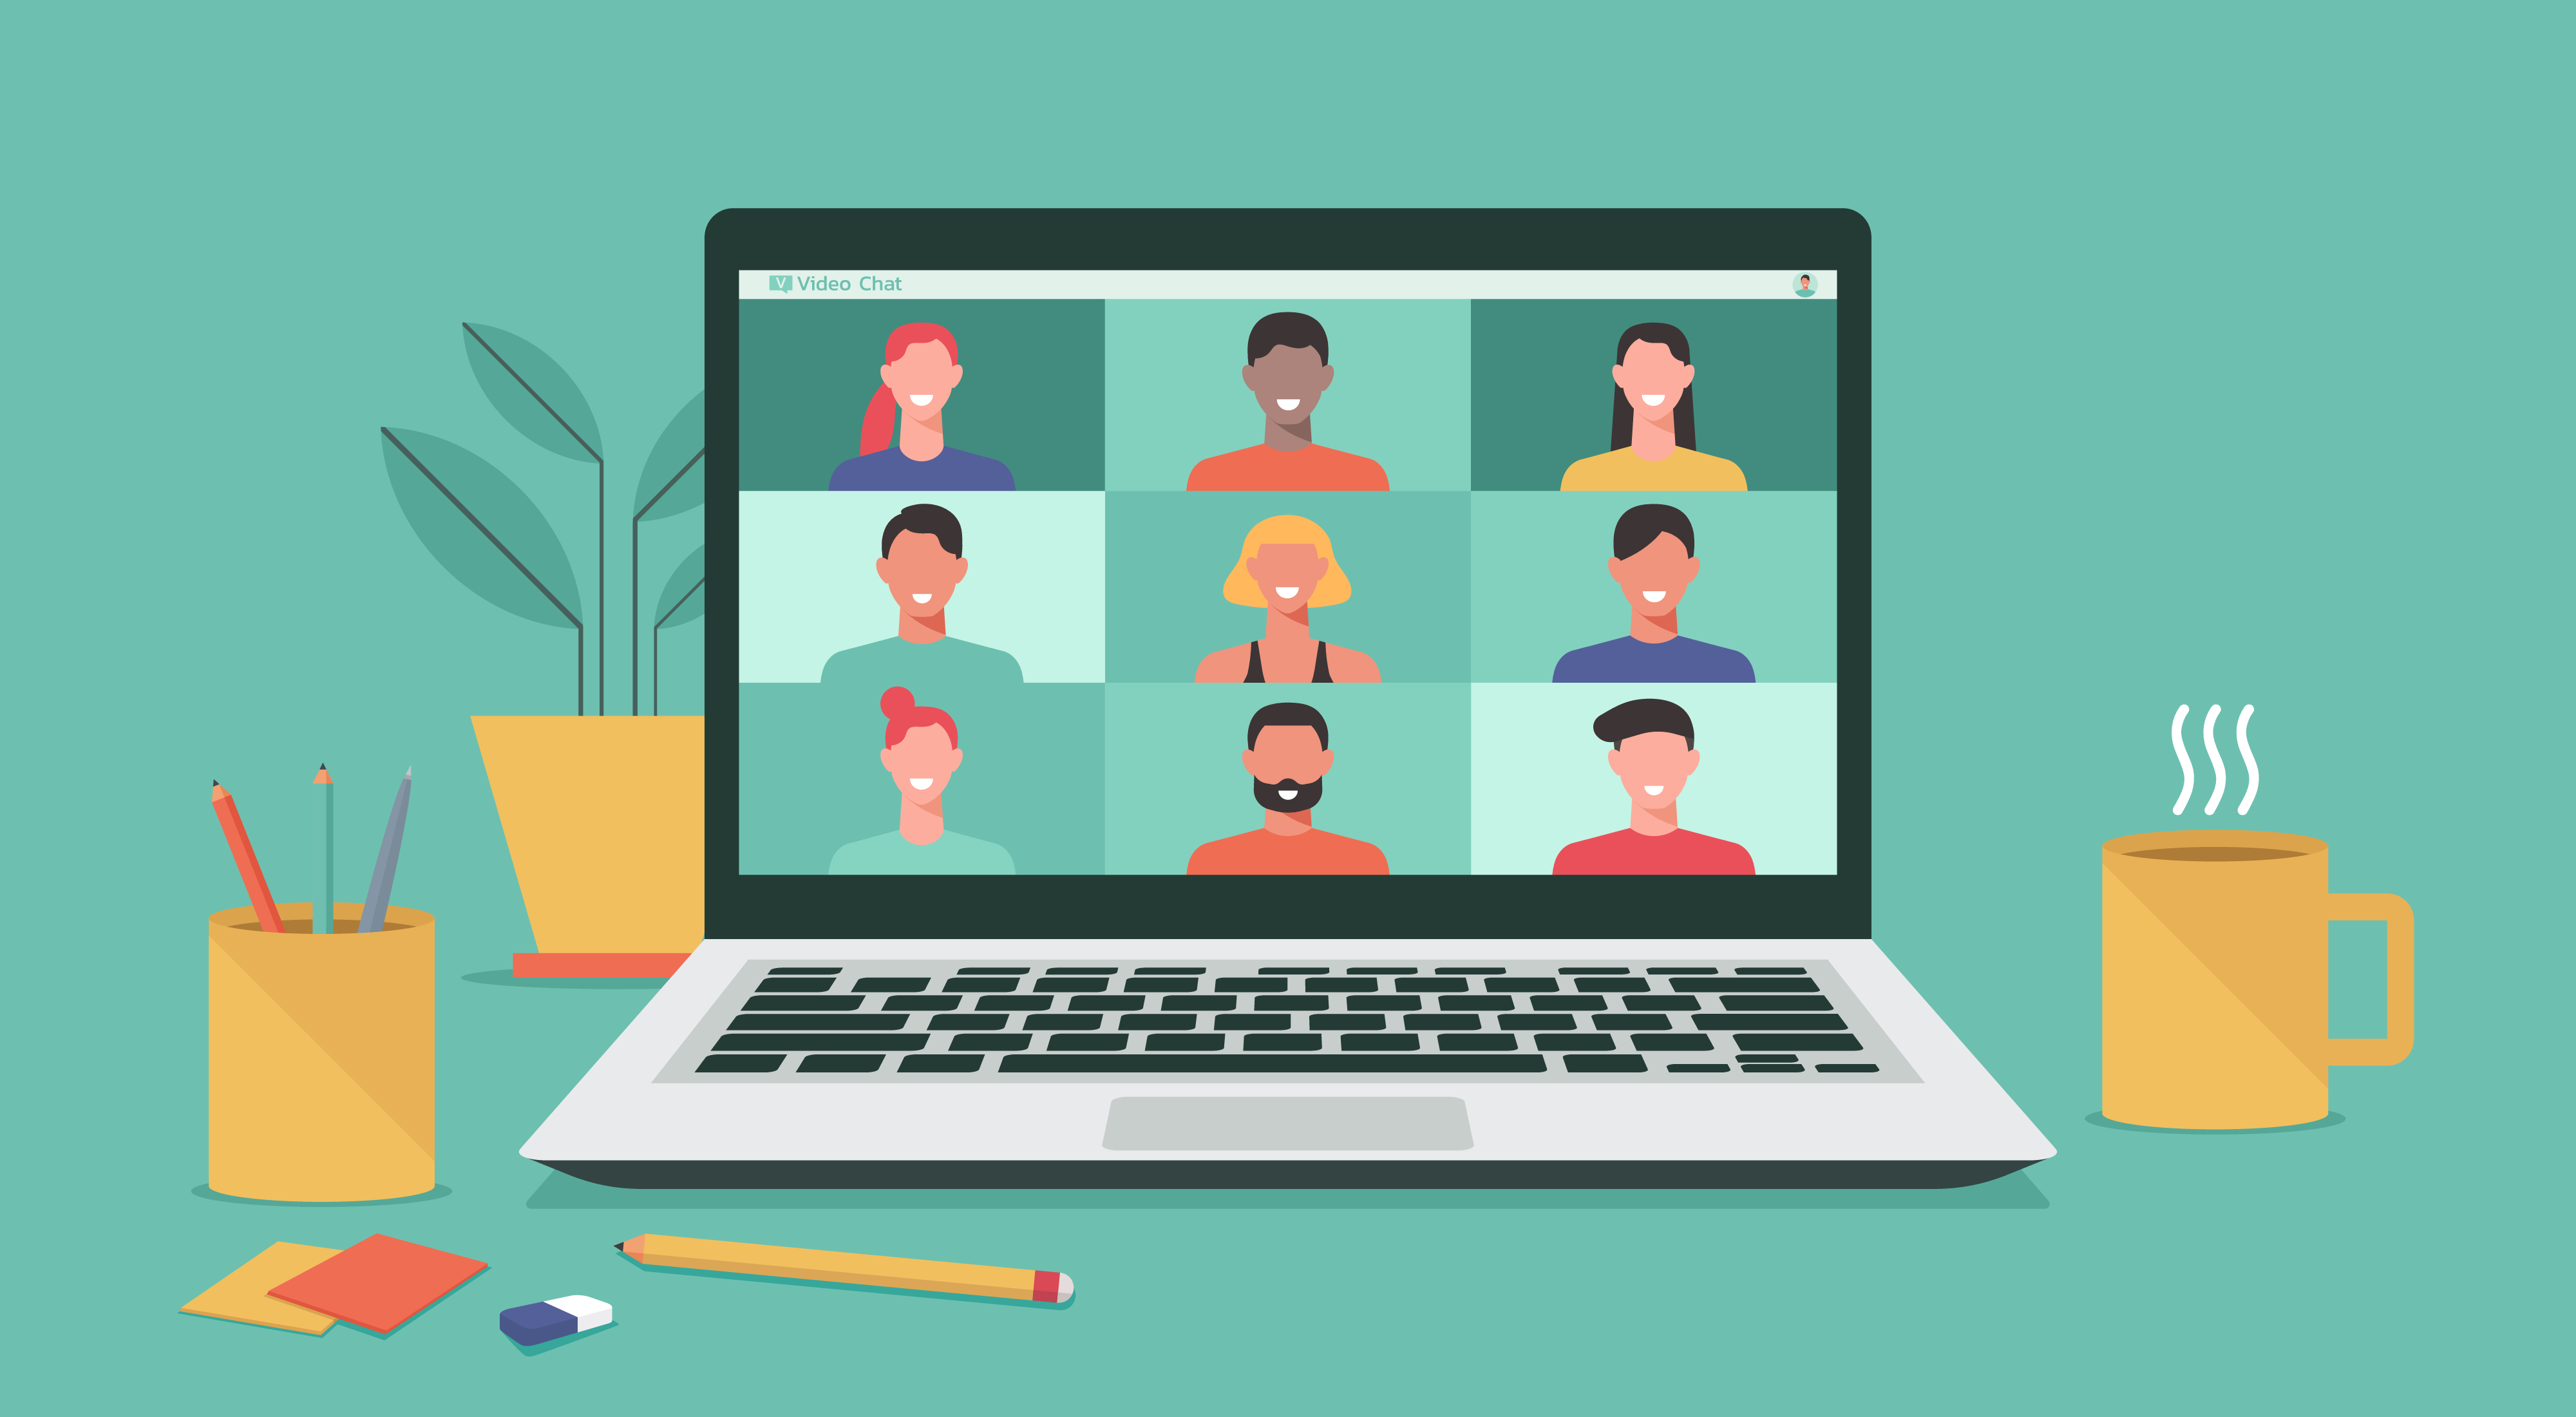 People,Connecting,Together,,Learning,Or,Meeting,Online,With,Teleconference,,Video